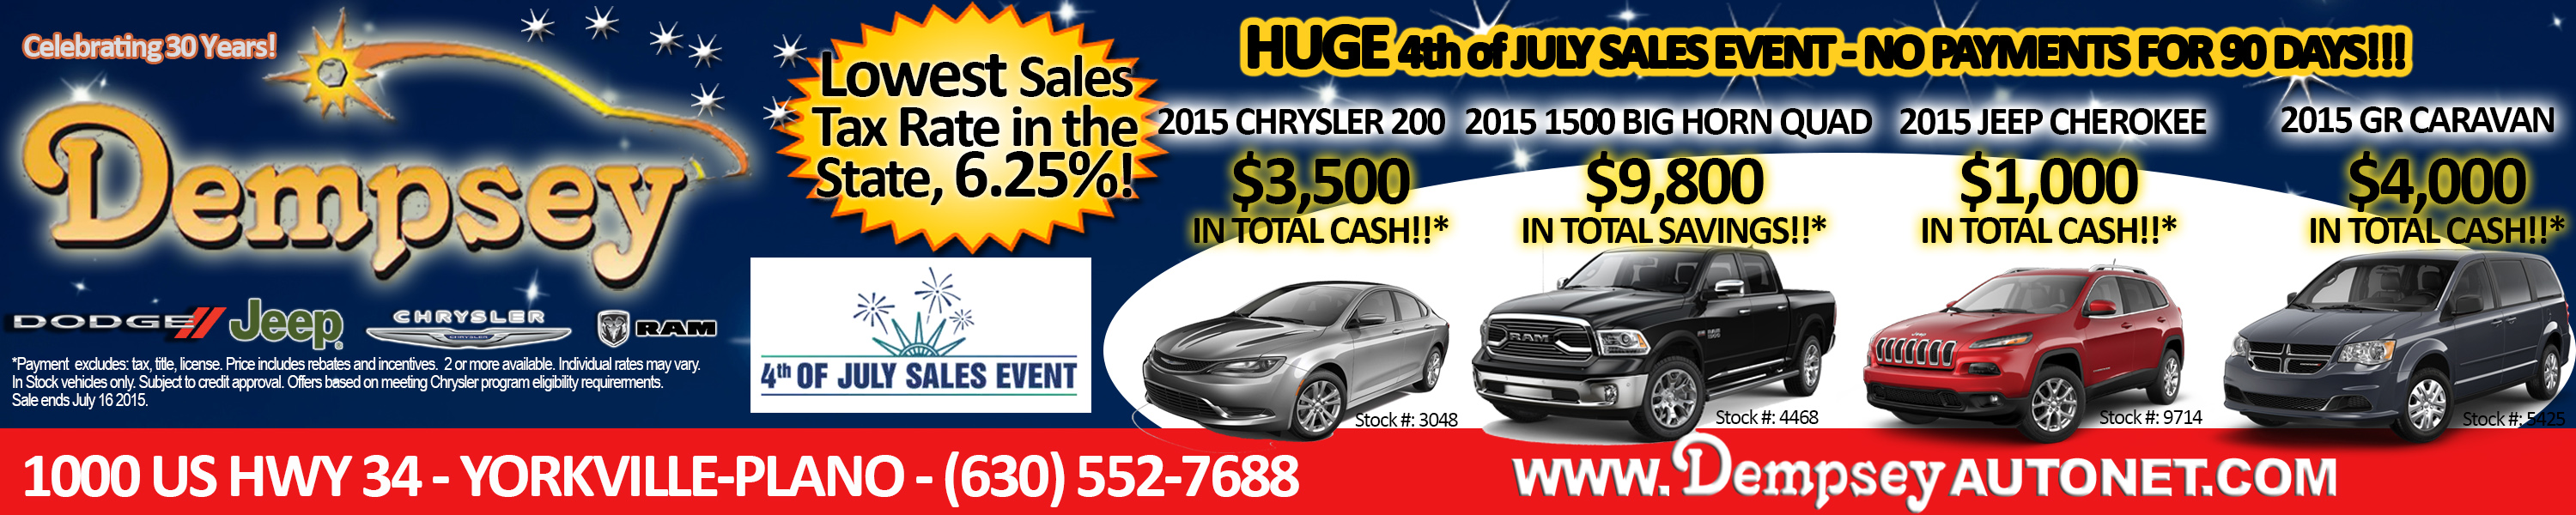 Dempsey TribLocal front page strip - July 2015 - 4th of july sale event